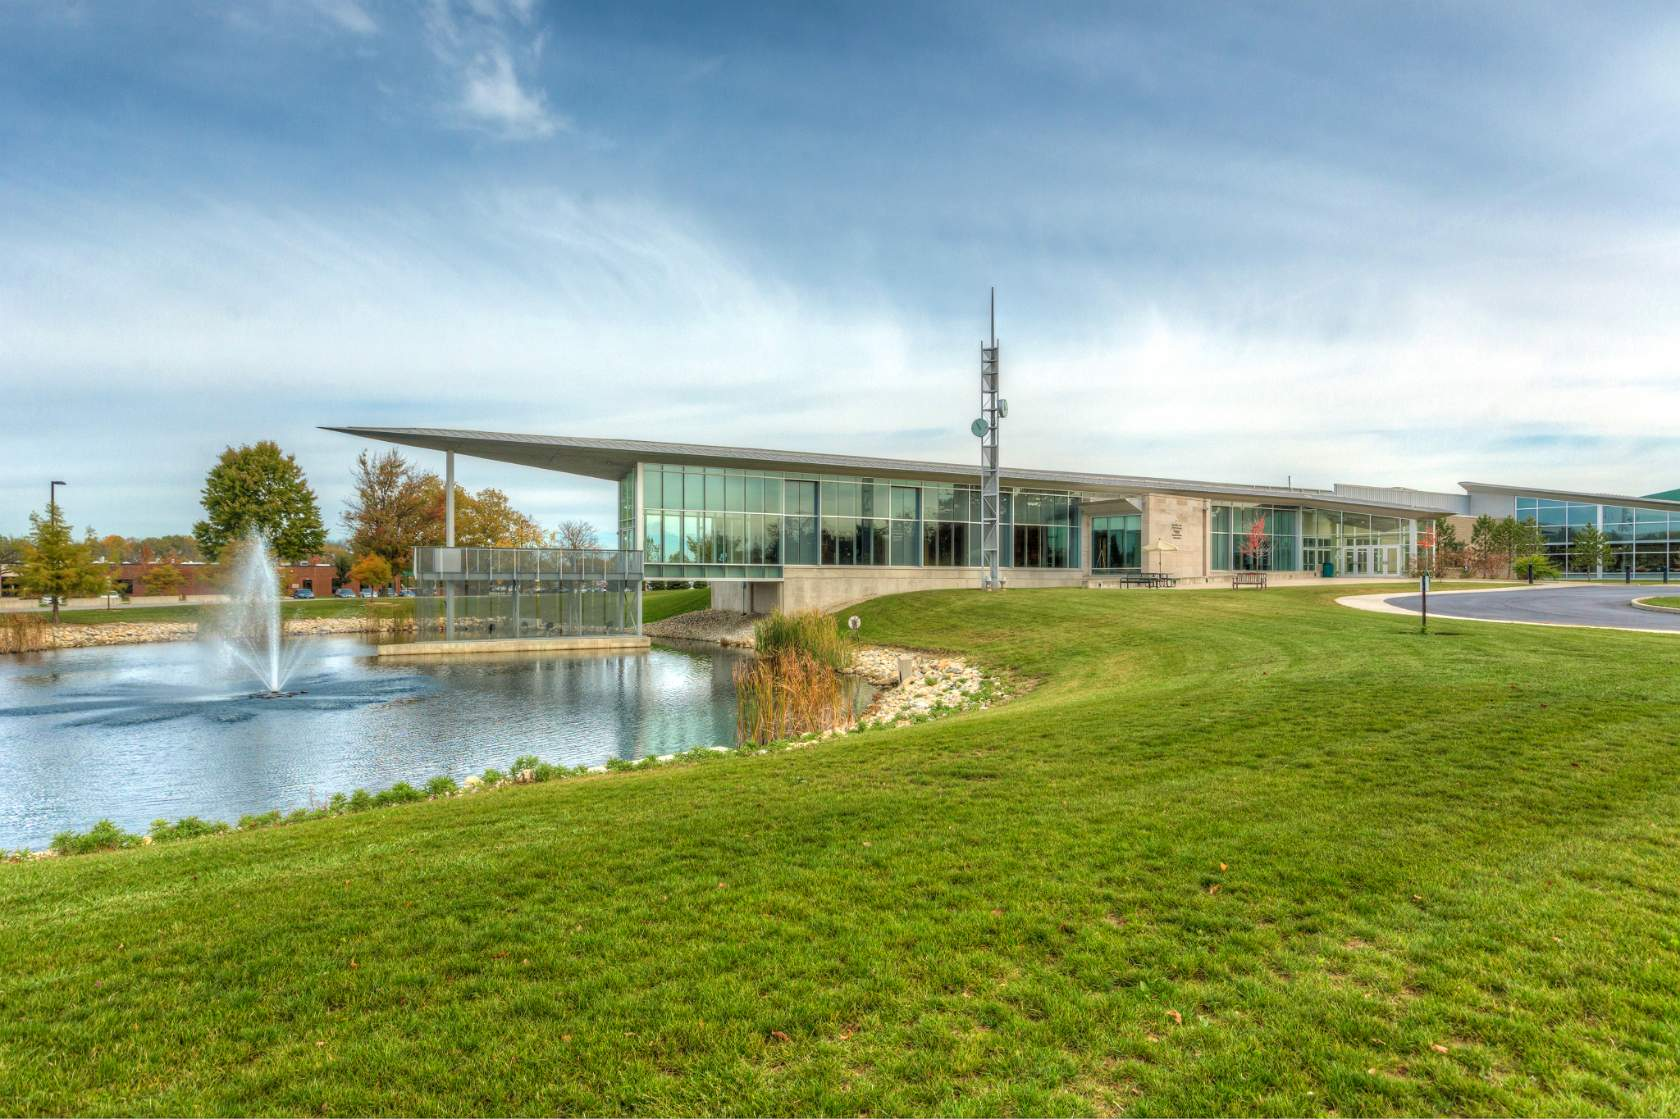 10 Hardest Courses at Edison State Community College